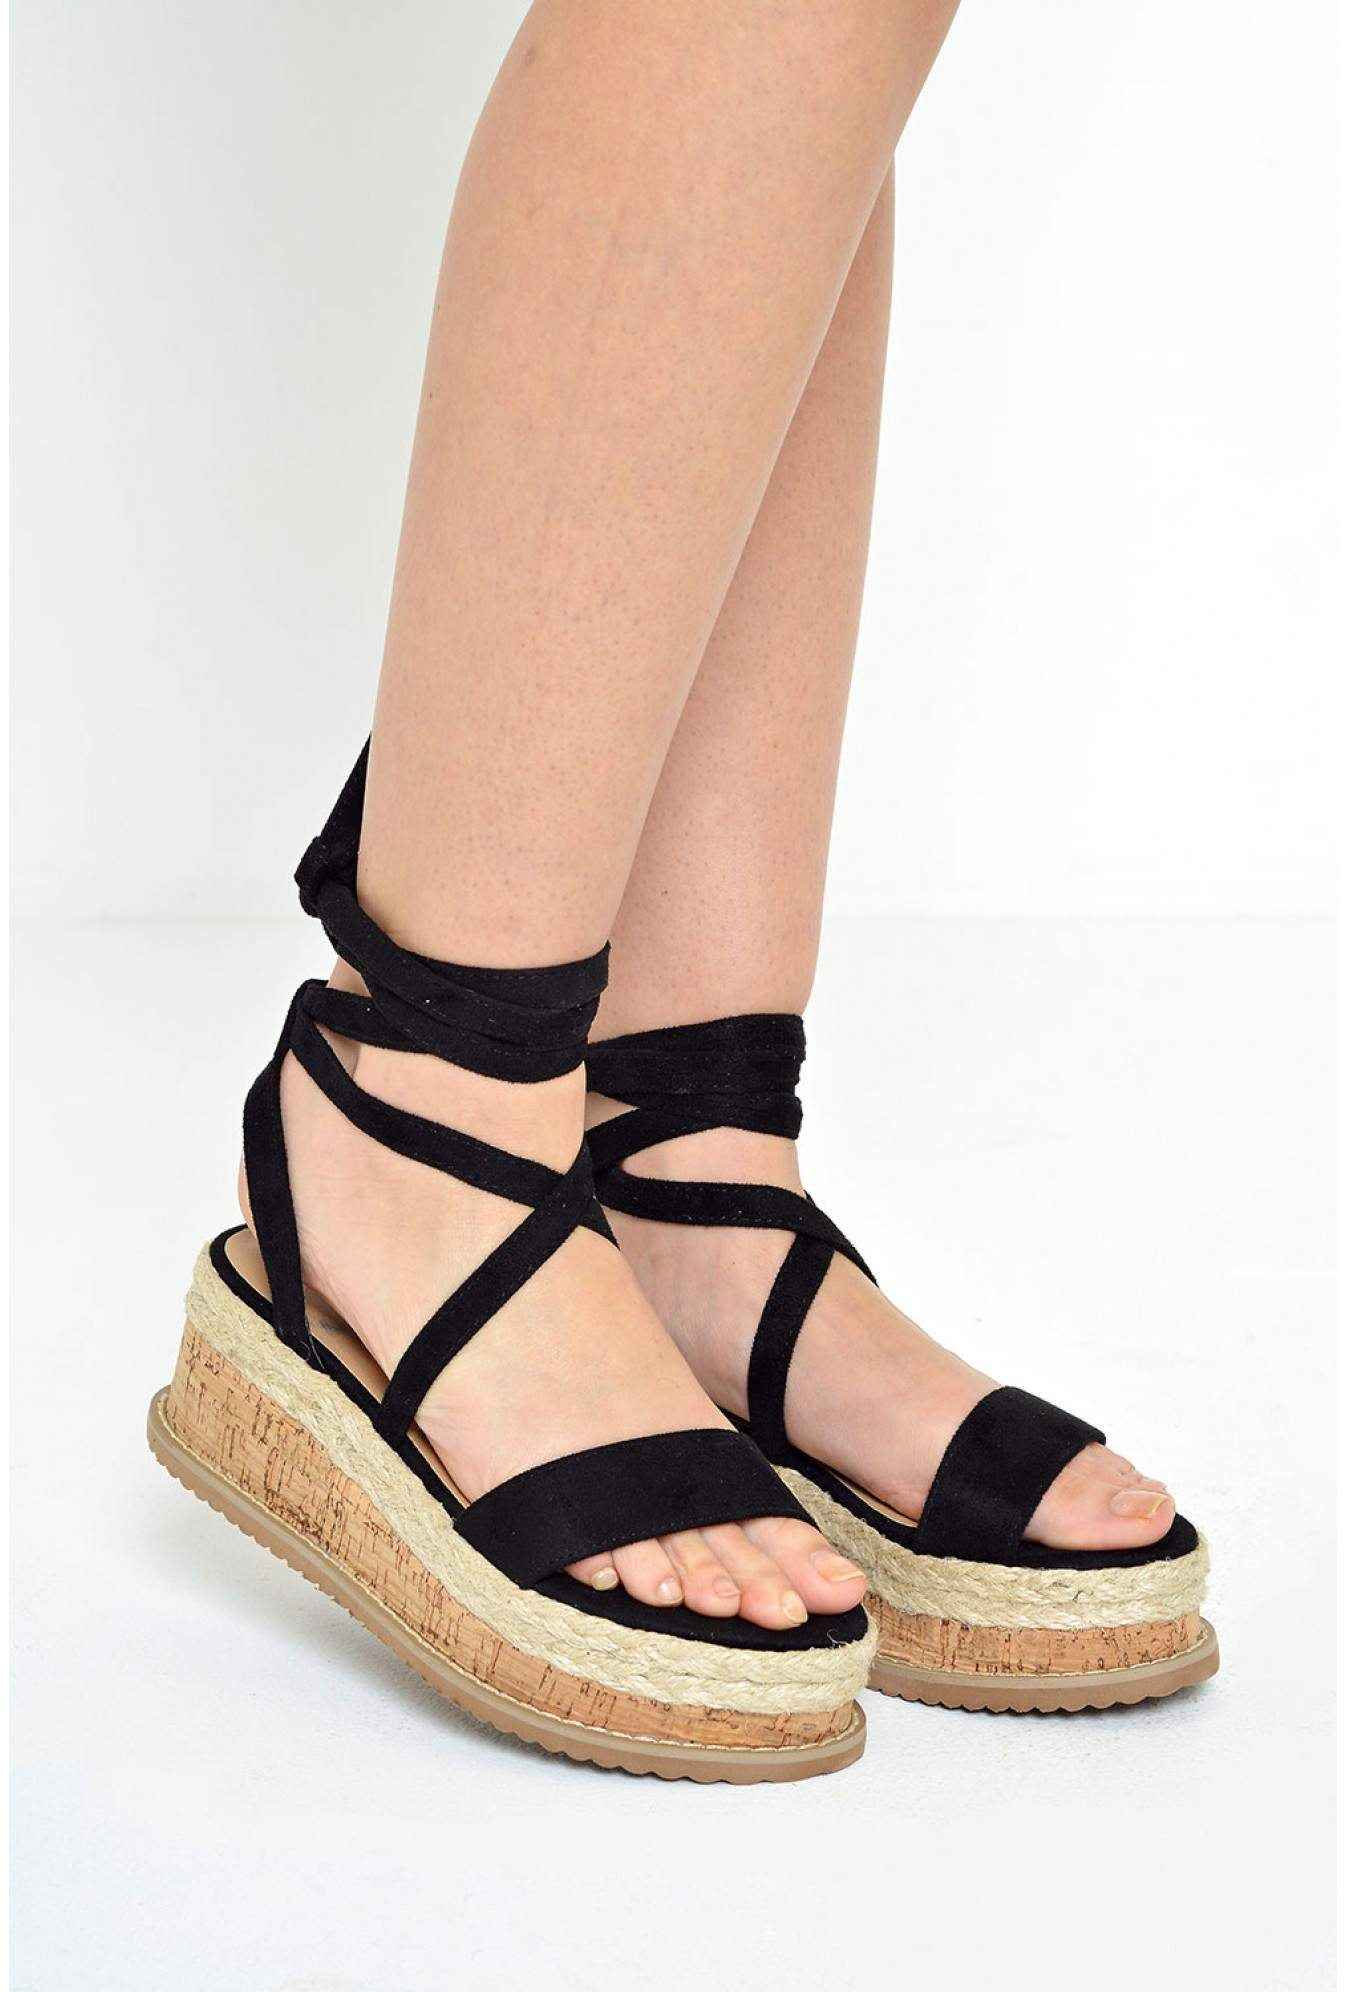 d615b66de0e0 No Doubt Ingrid Lace Up Espadrilles Platform Sandals in Black ...